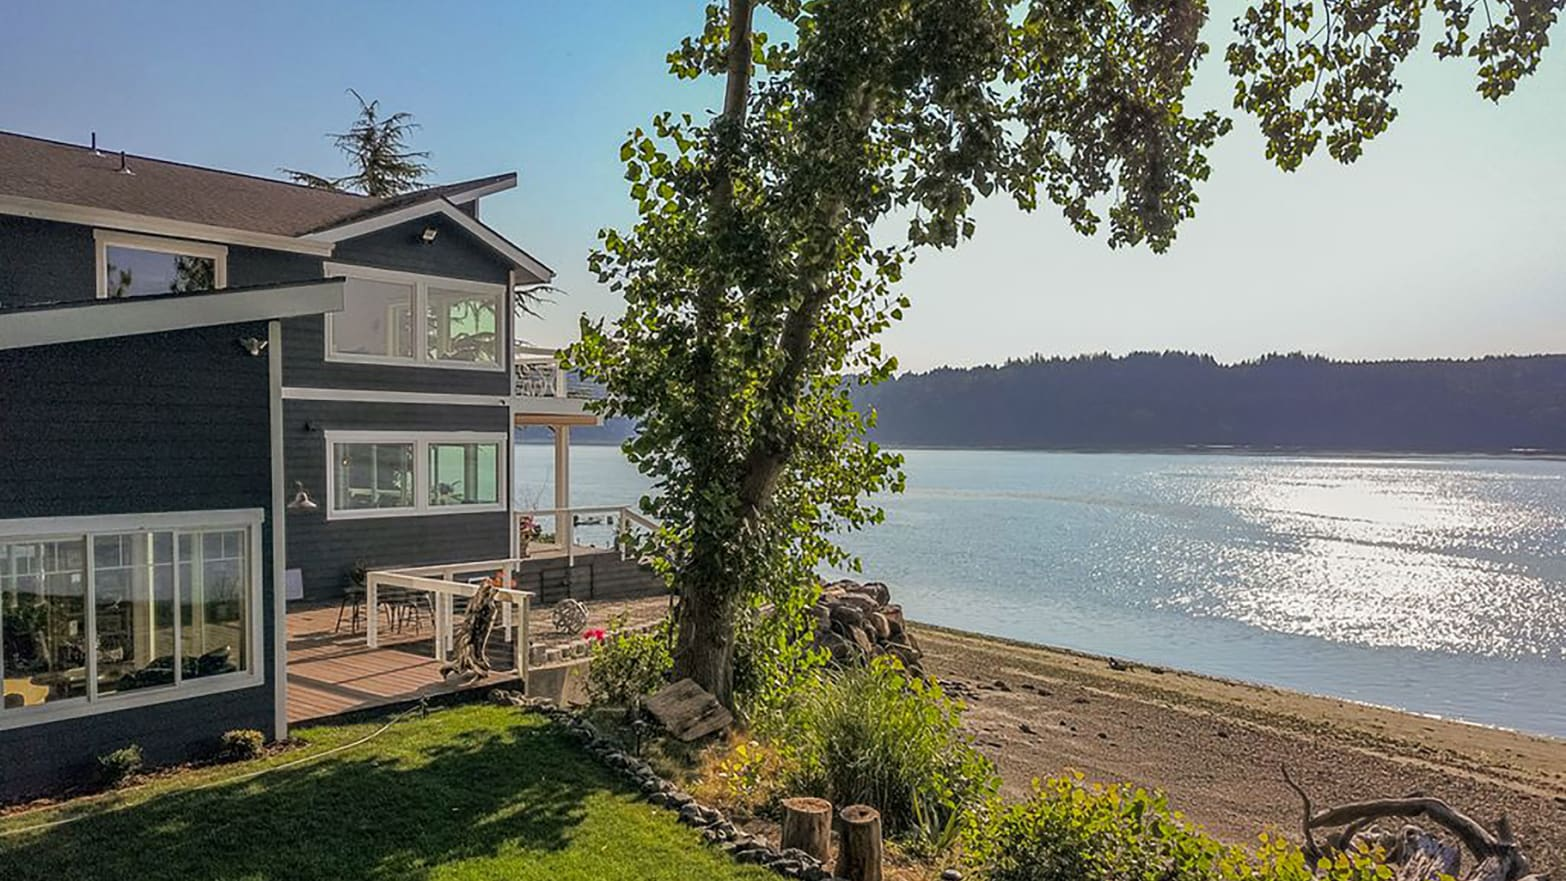 OMG, I Want to Rent This House: Vashon Island, Washington